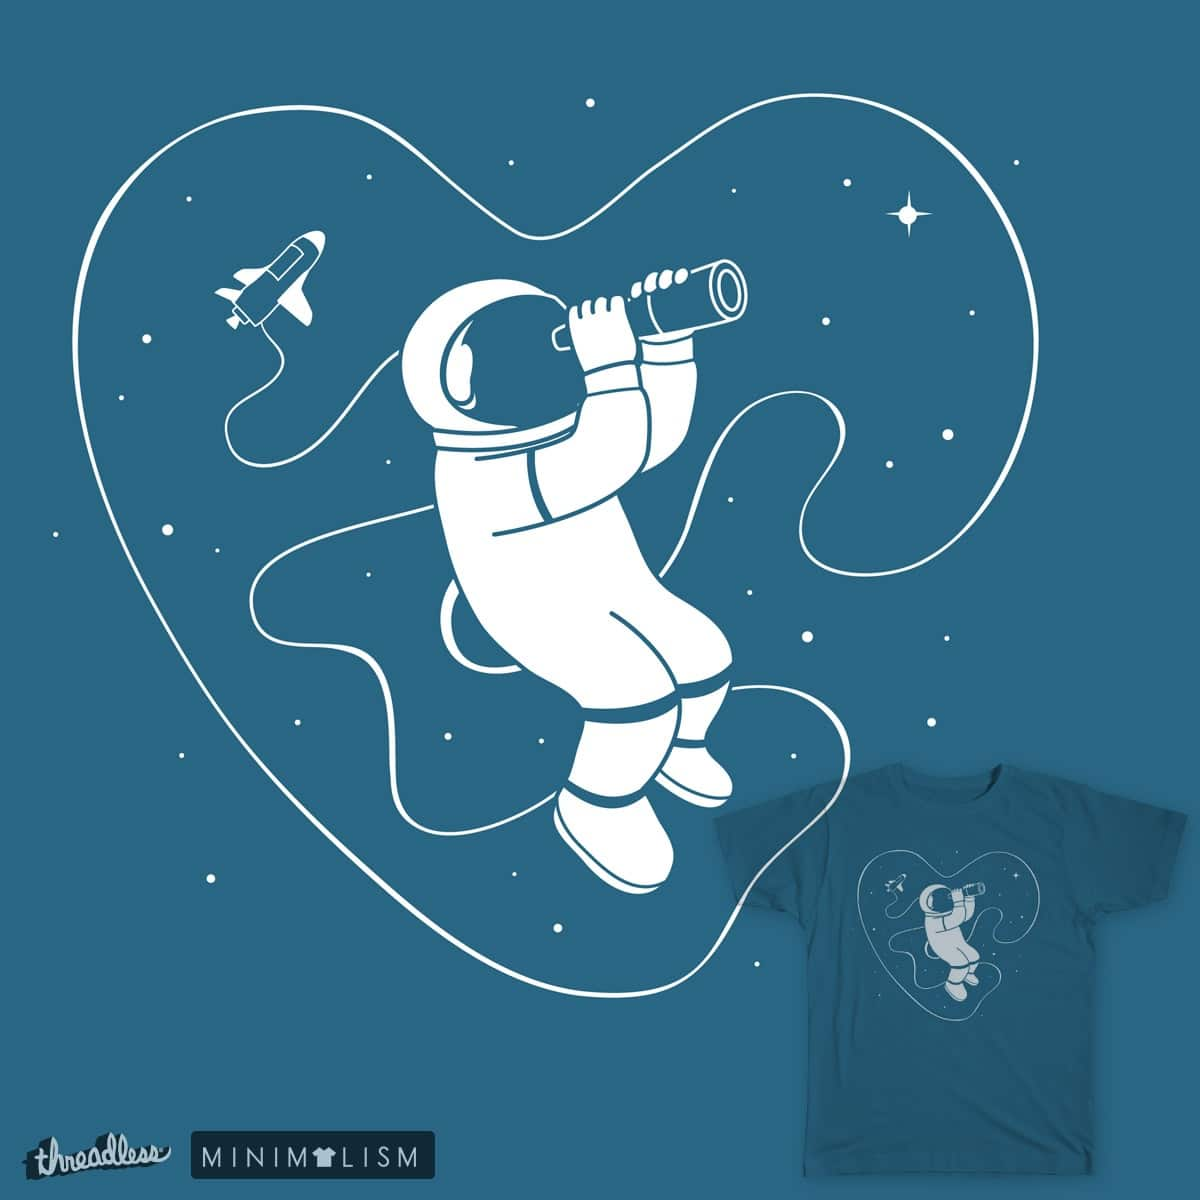 Search the Deepest Space within  by monkeypim on Threadless